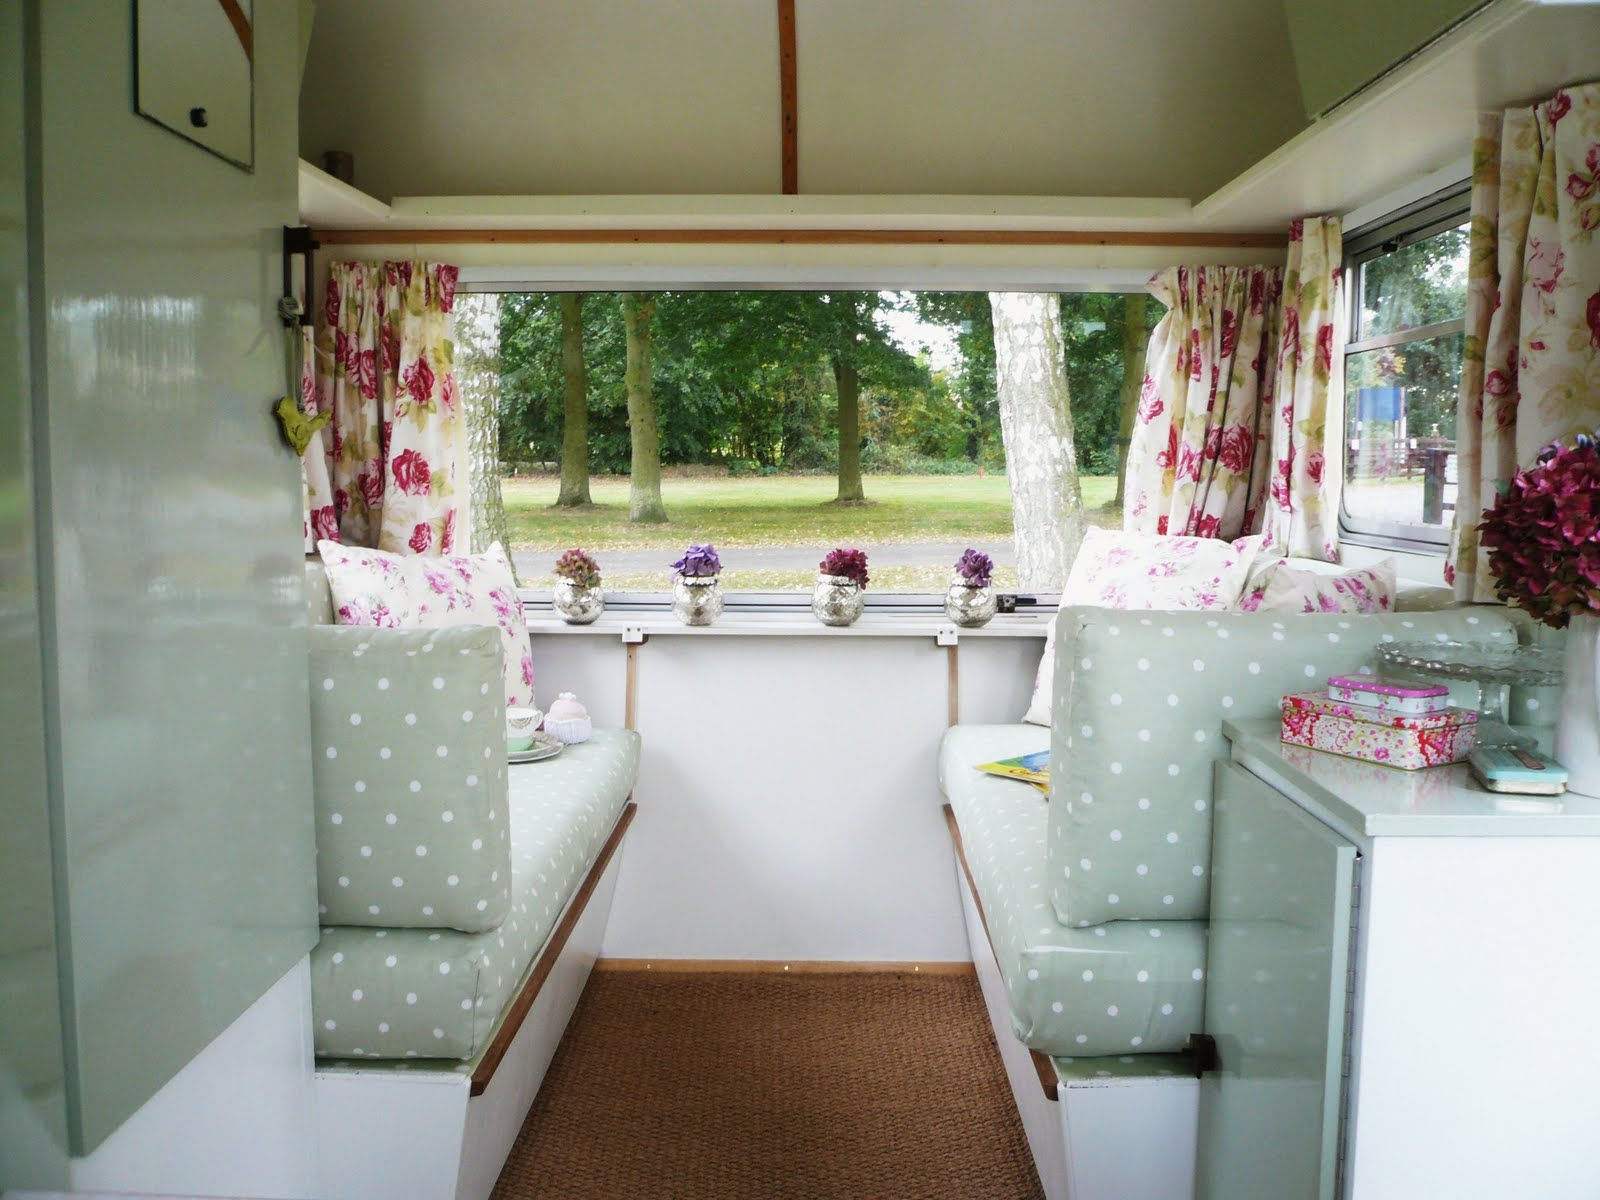 Home camping in cute campers squirrelly minds for Interior caravan designs